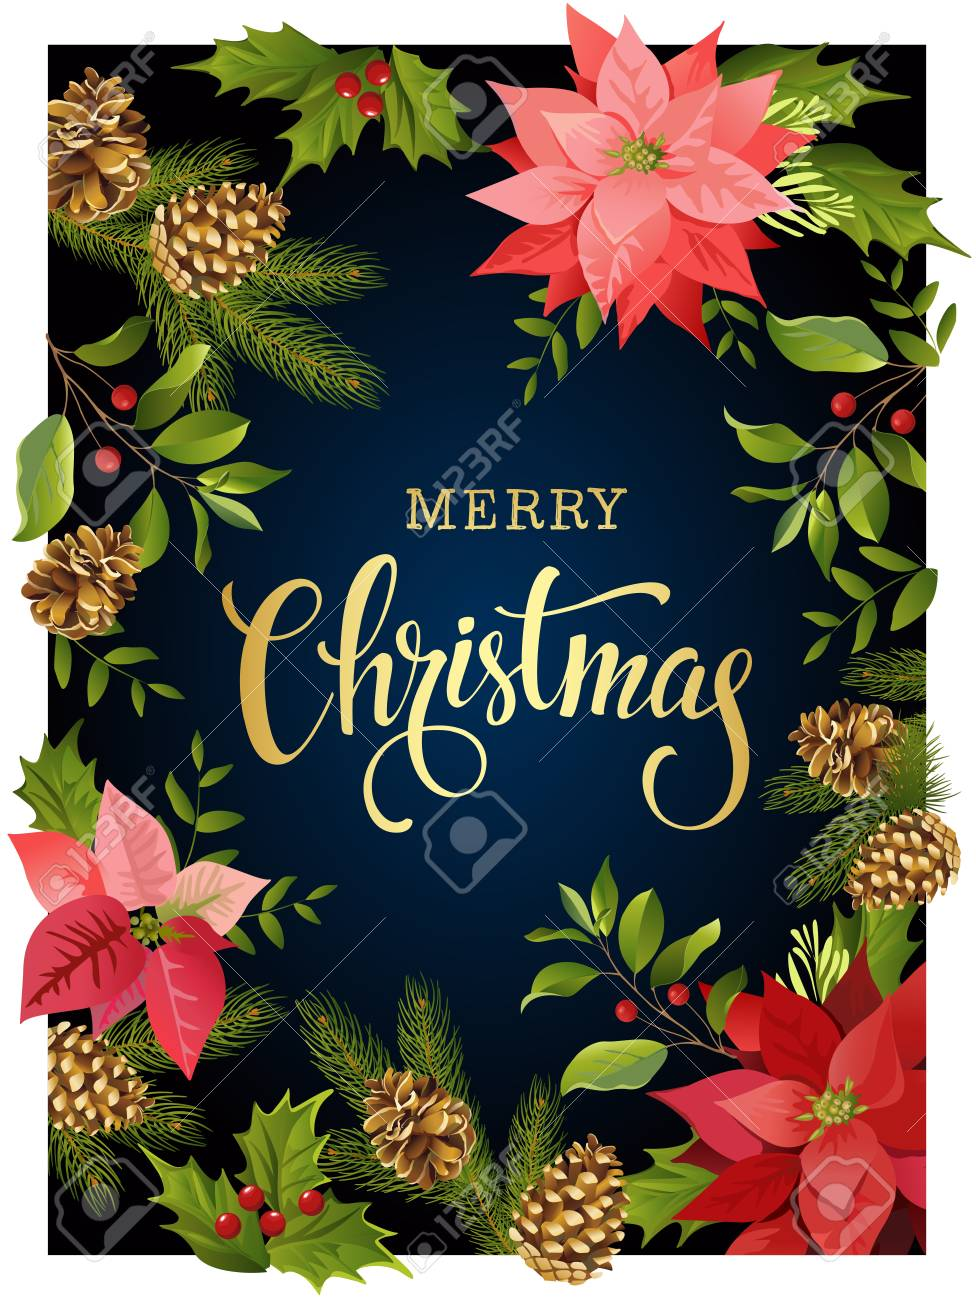 Christmas design composition frame of red poinsettia and leaves. Vector illustration. - 88100359